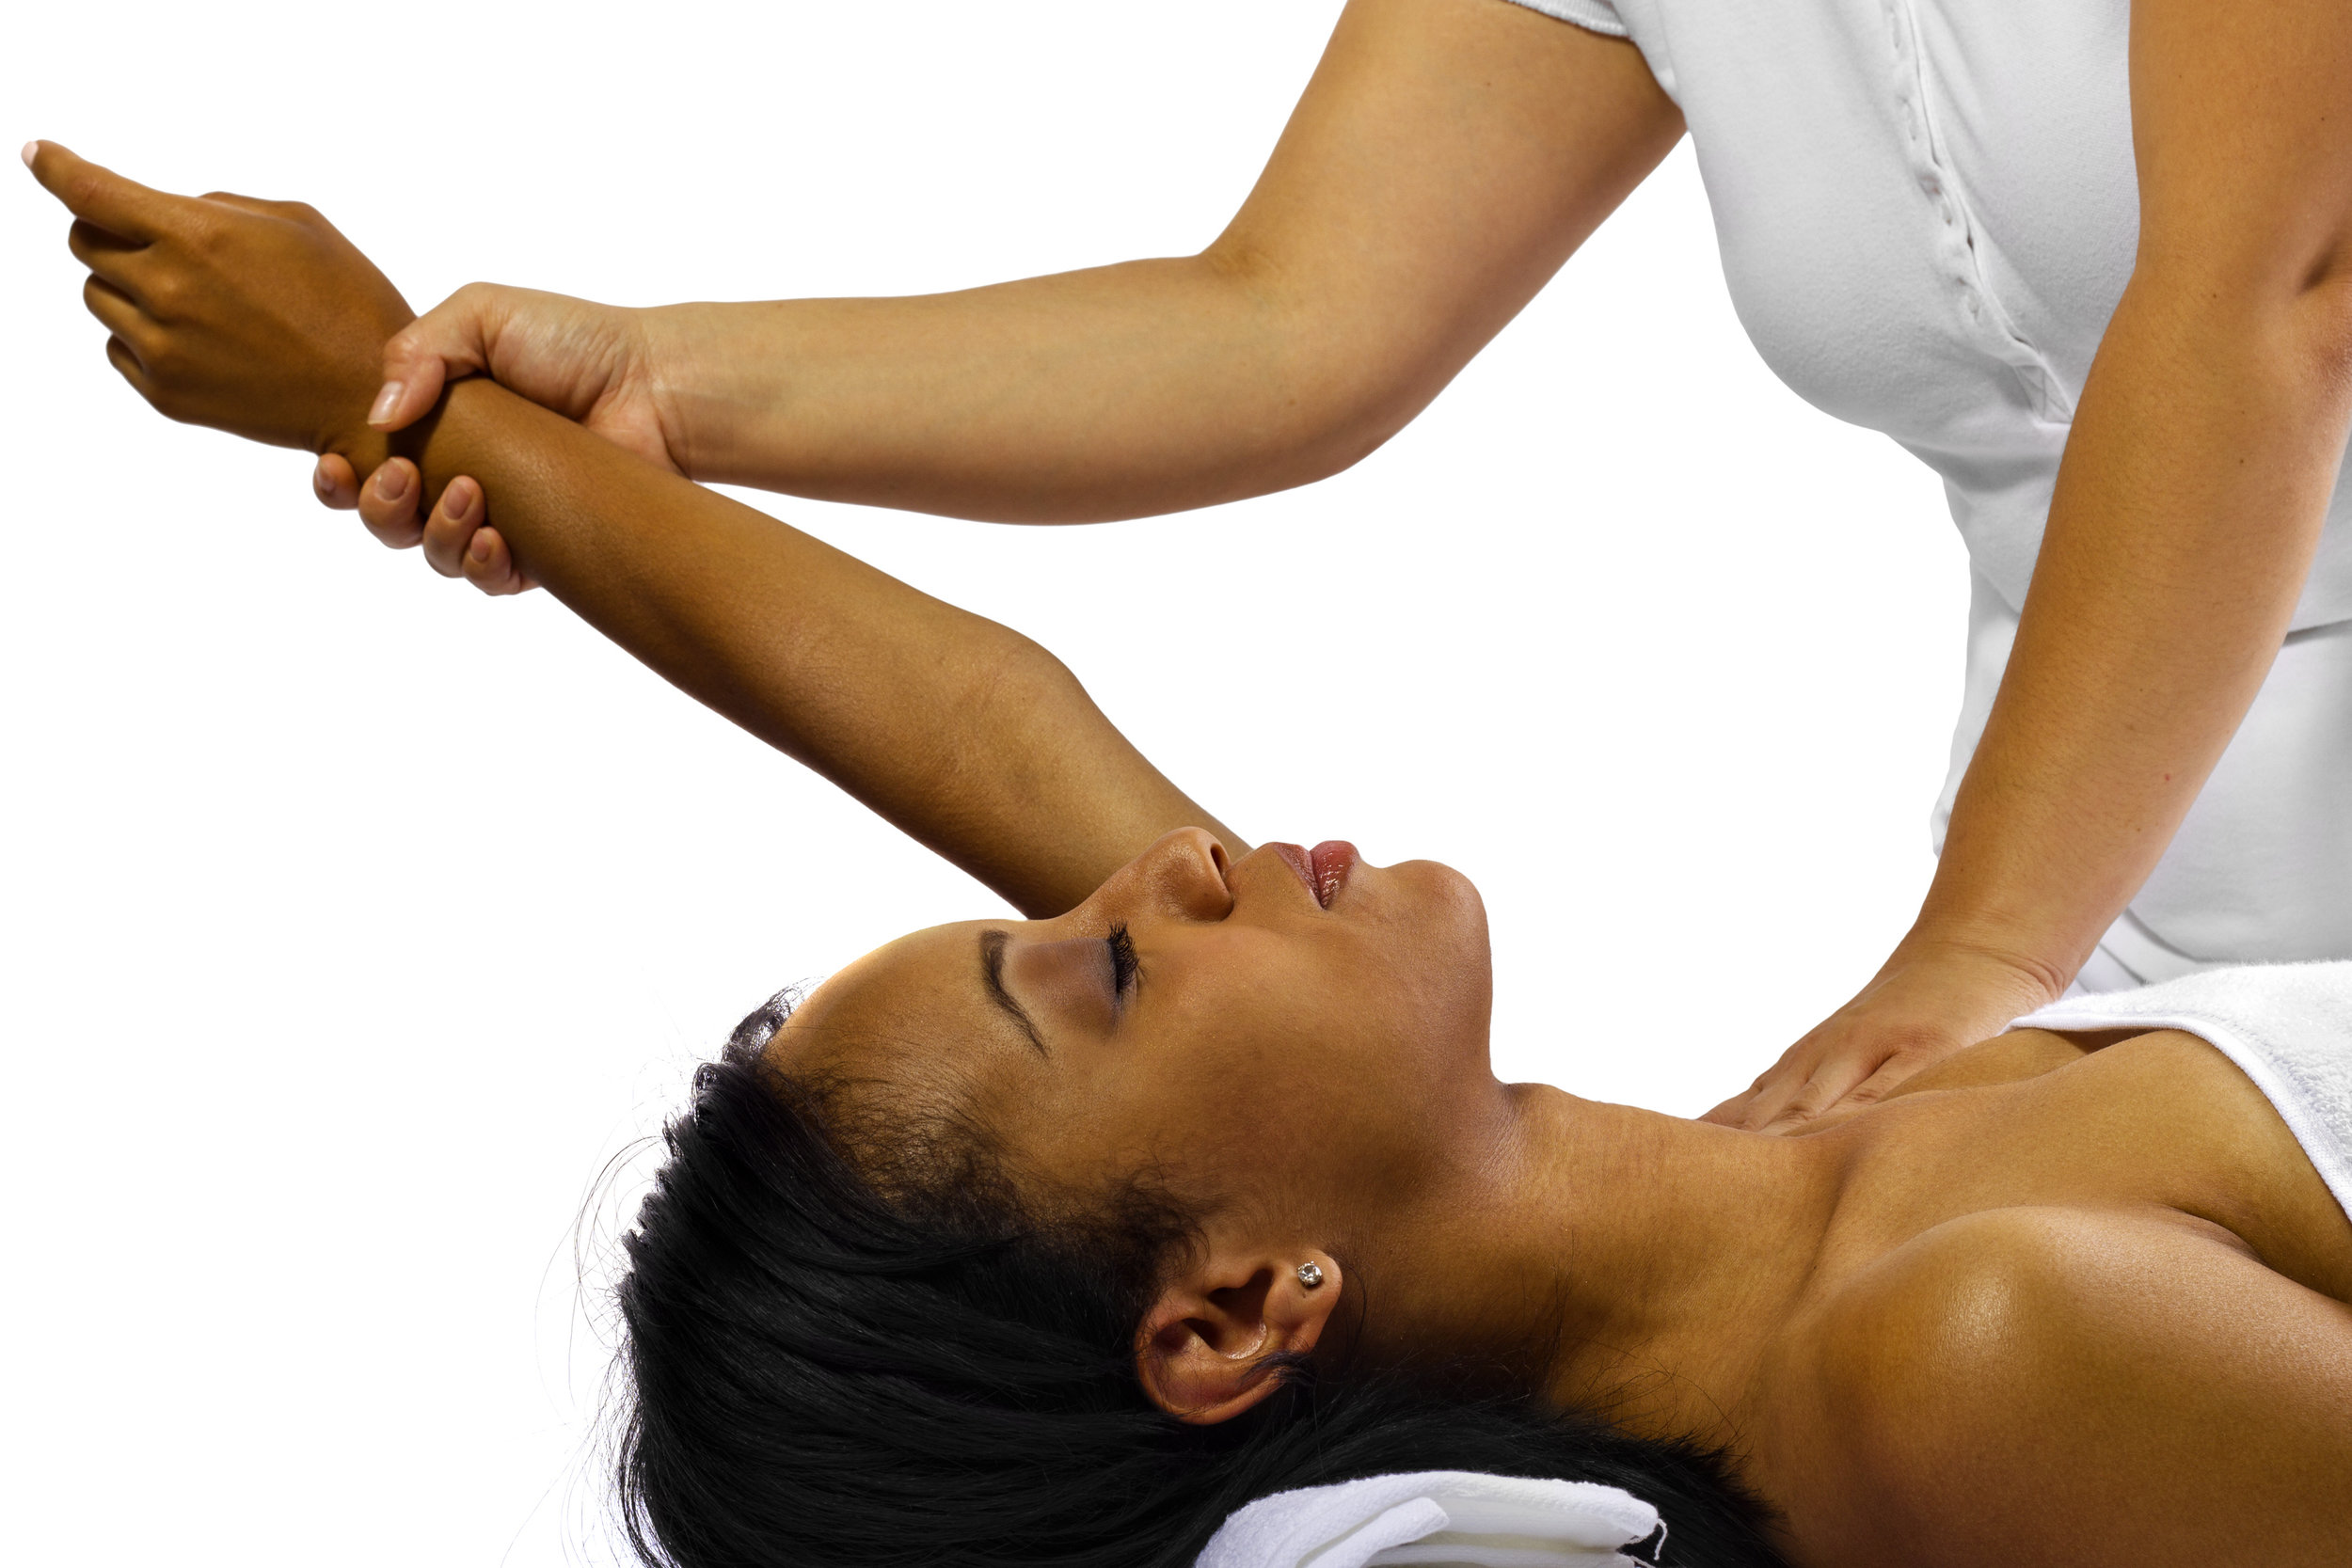 African-Amercian-Female-Getting-Physical-Therapy-160550123_2879x1920.jpeg